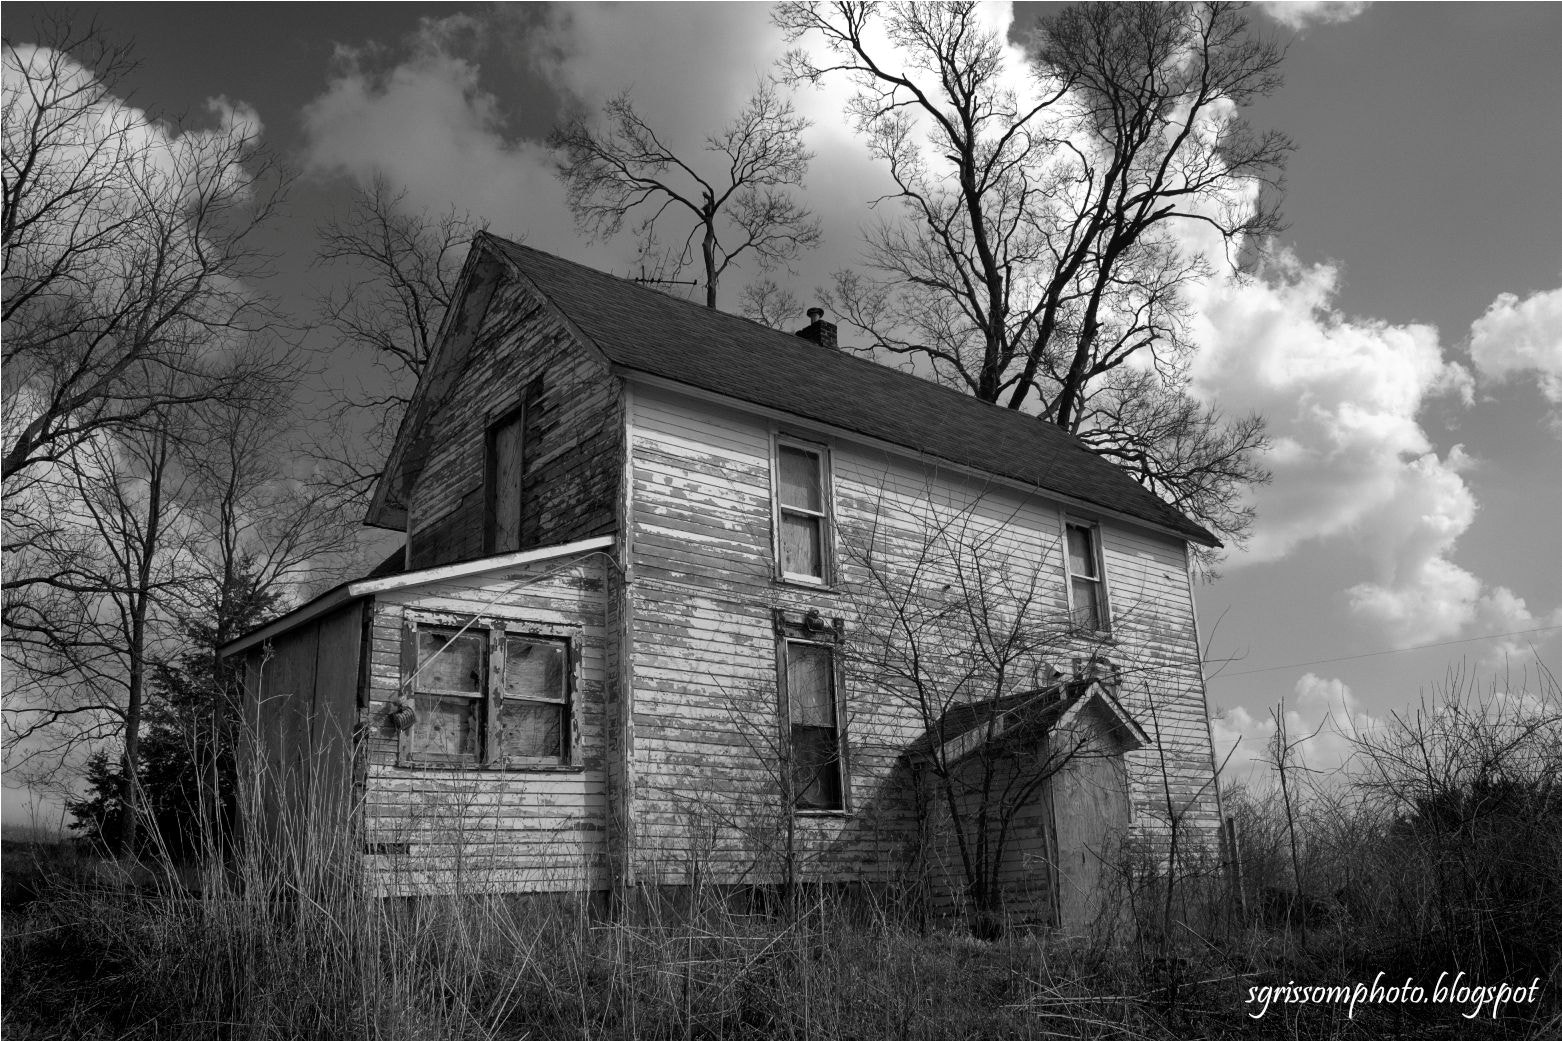 Photograph Rural Decay by Scott Grissom on 500px